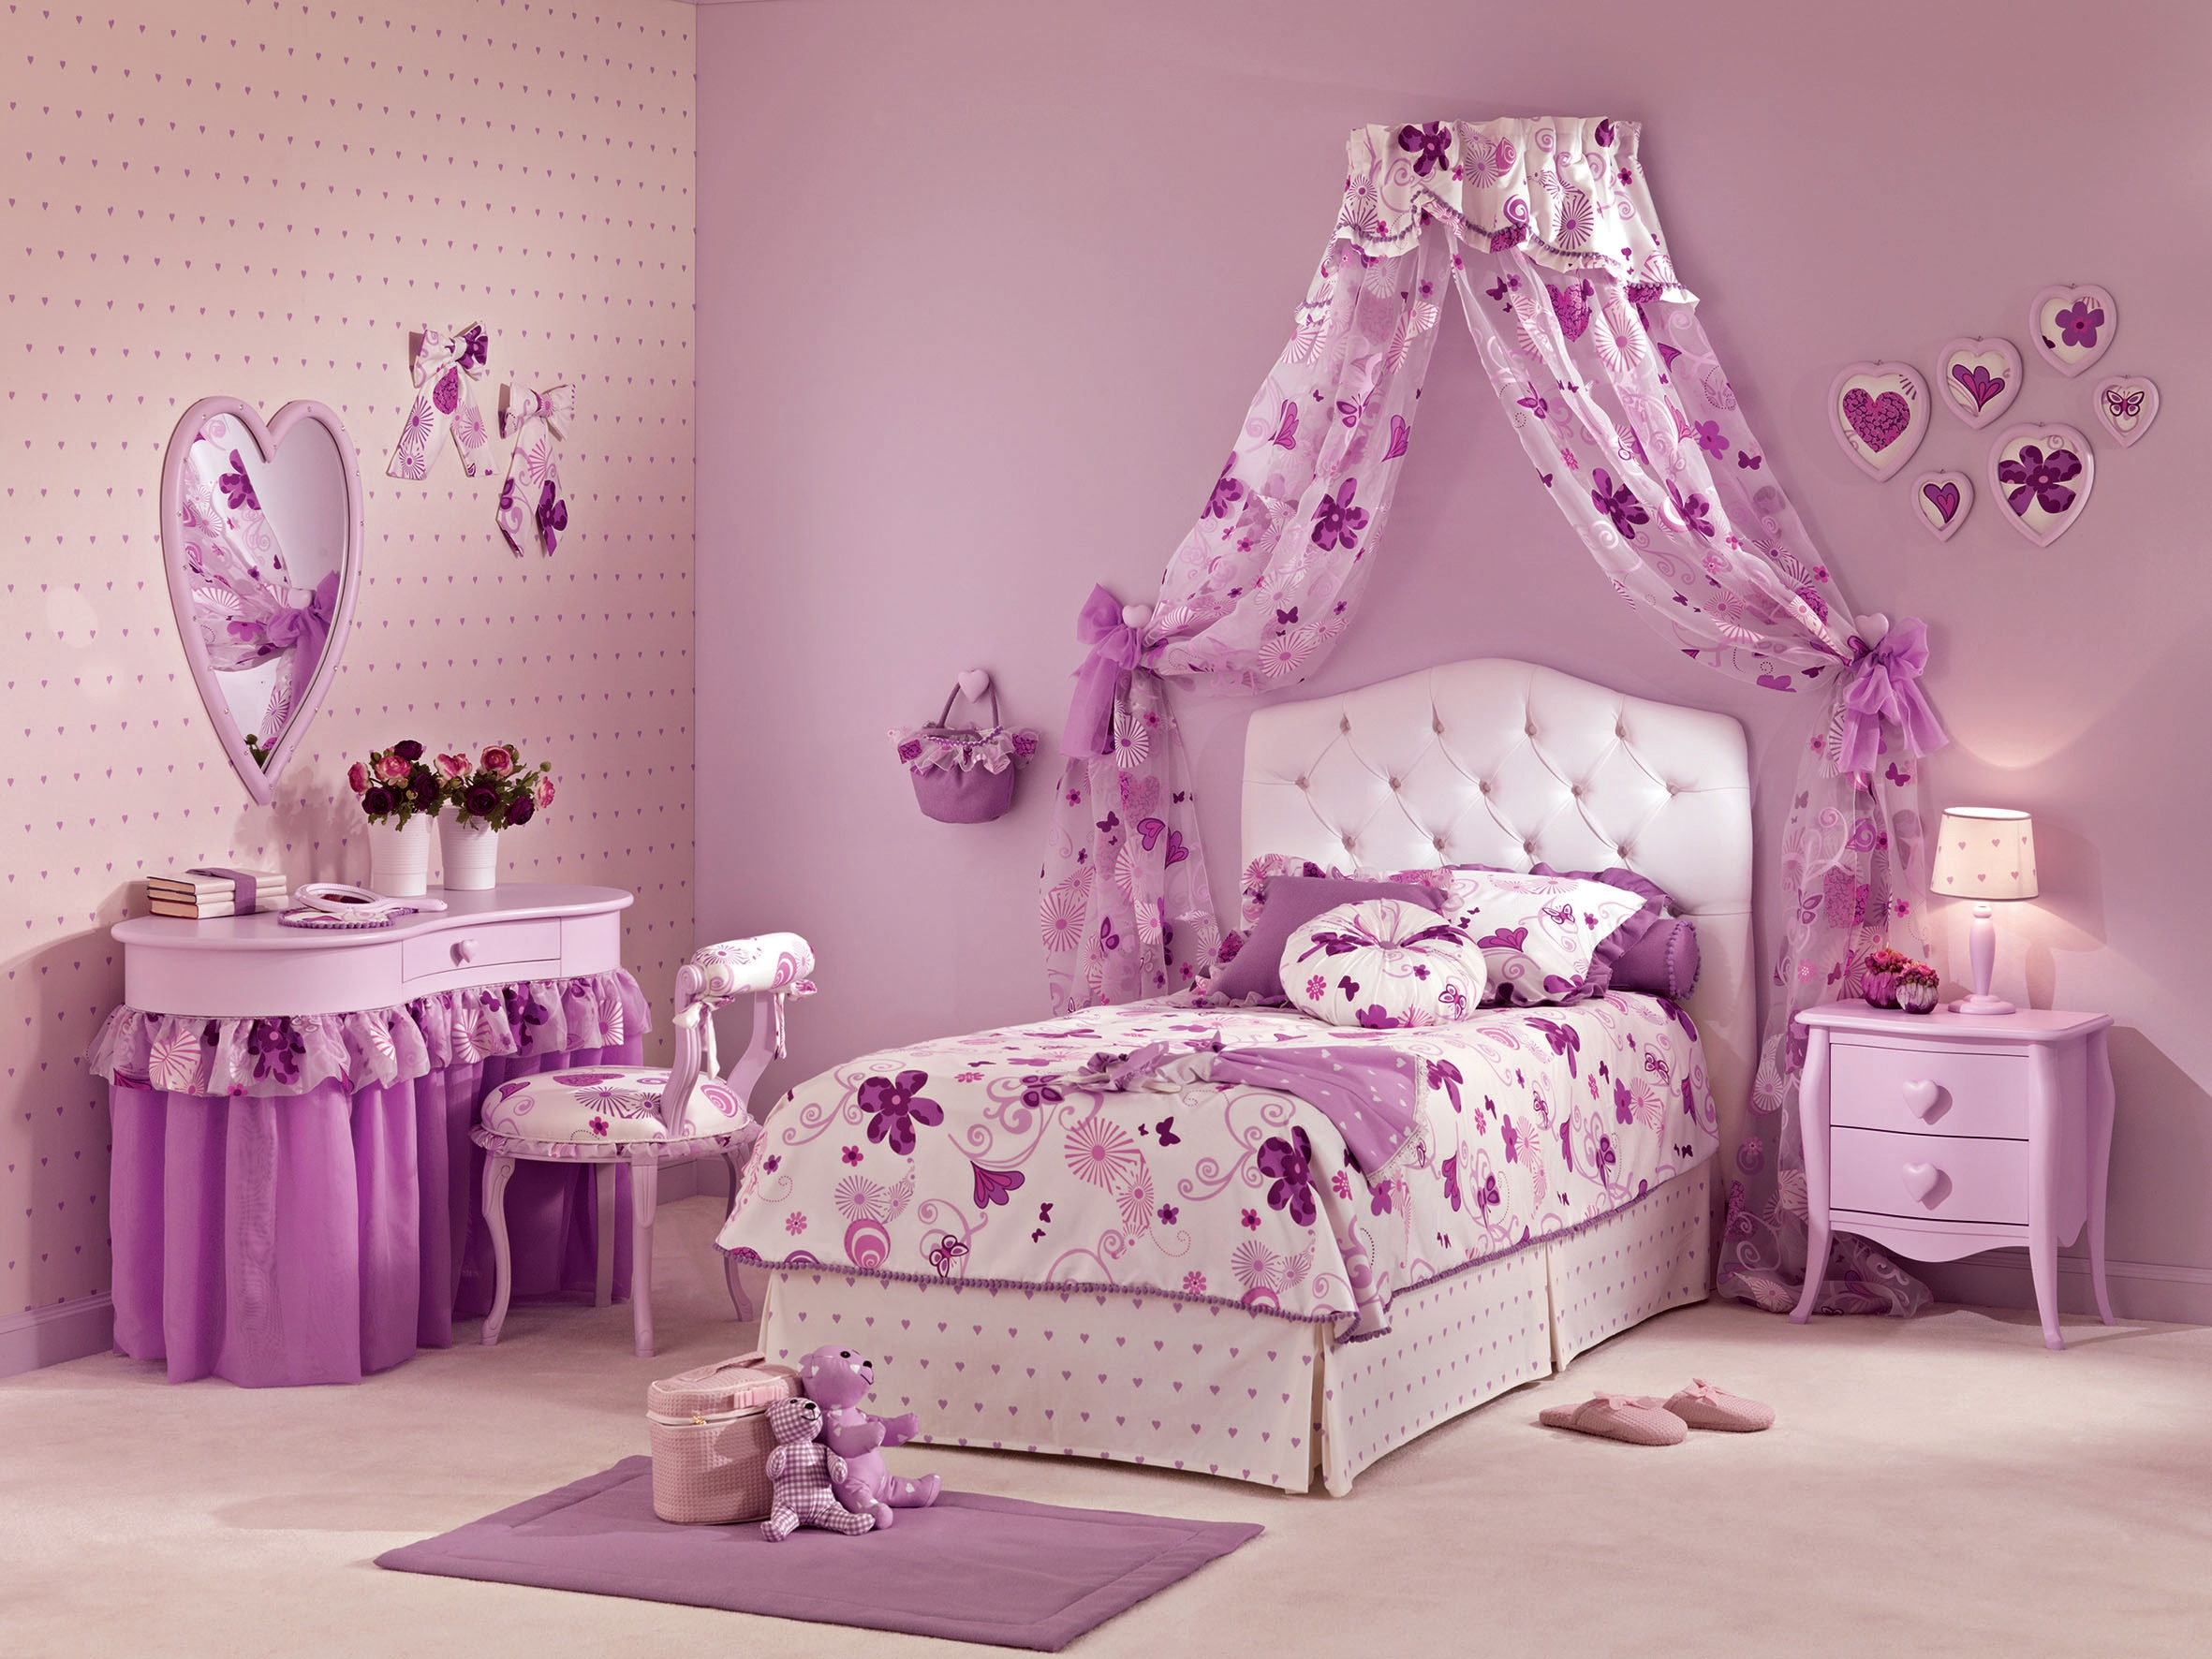 modele de chambre fille bebe confort axiss. Black Bedroom Furniture Sets. Home Design Ideas